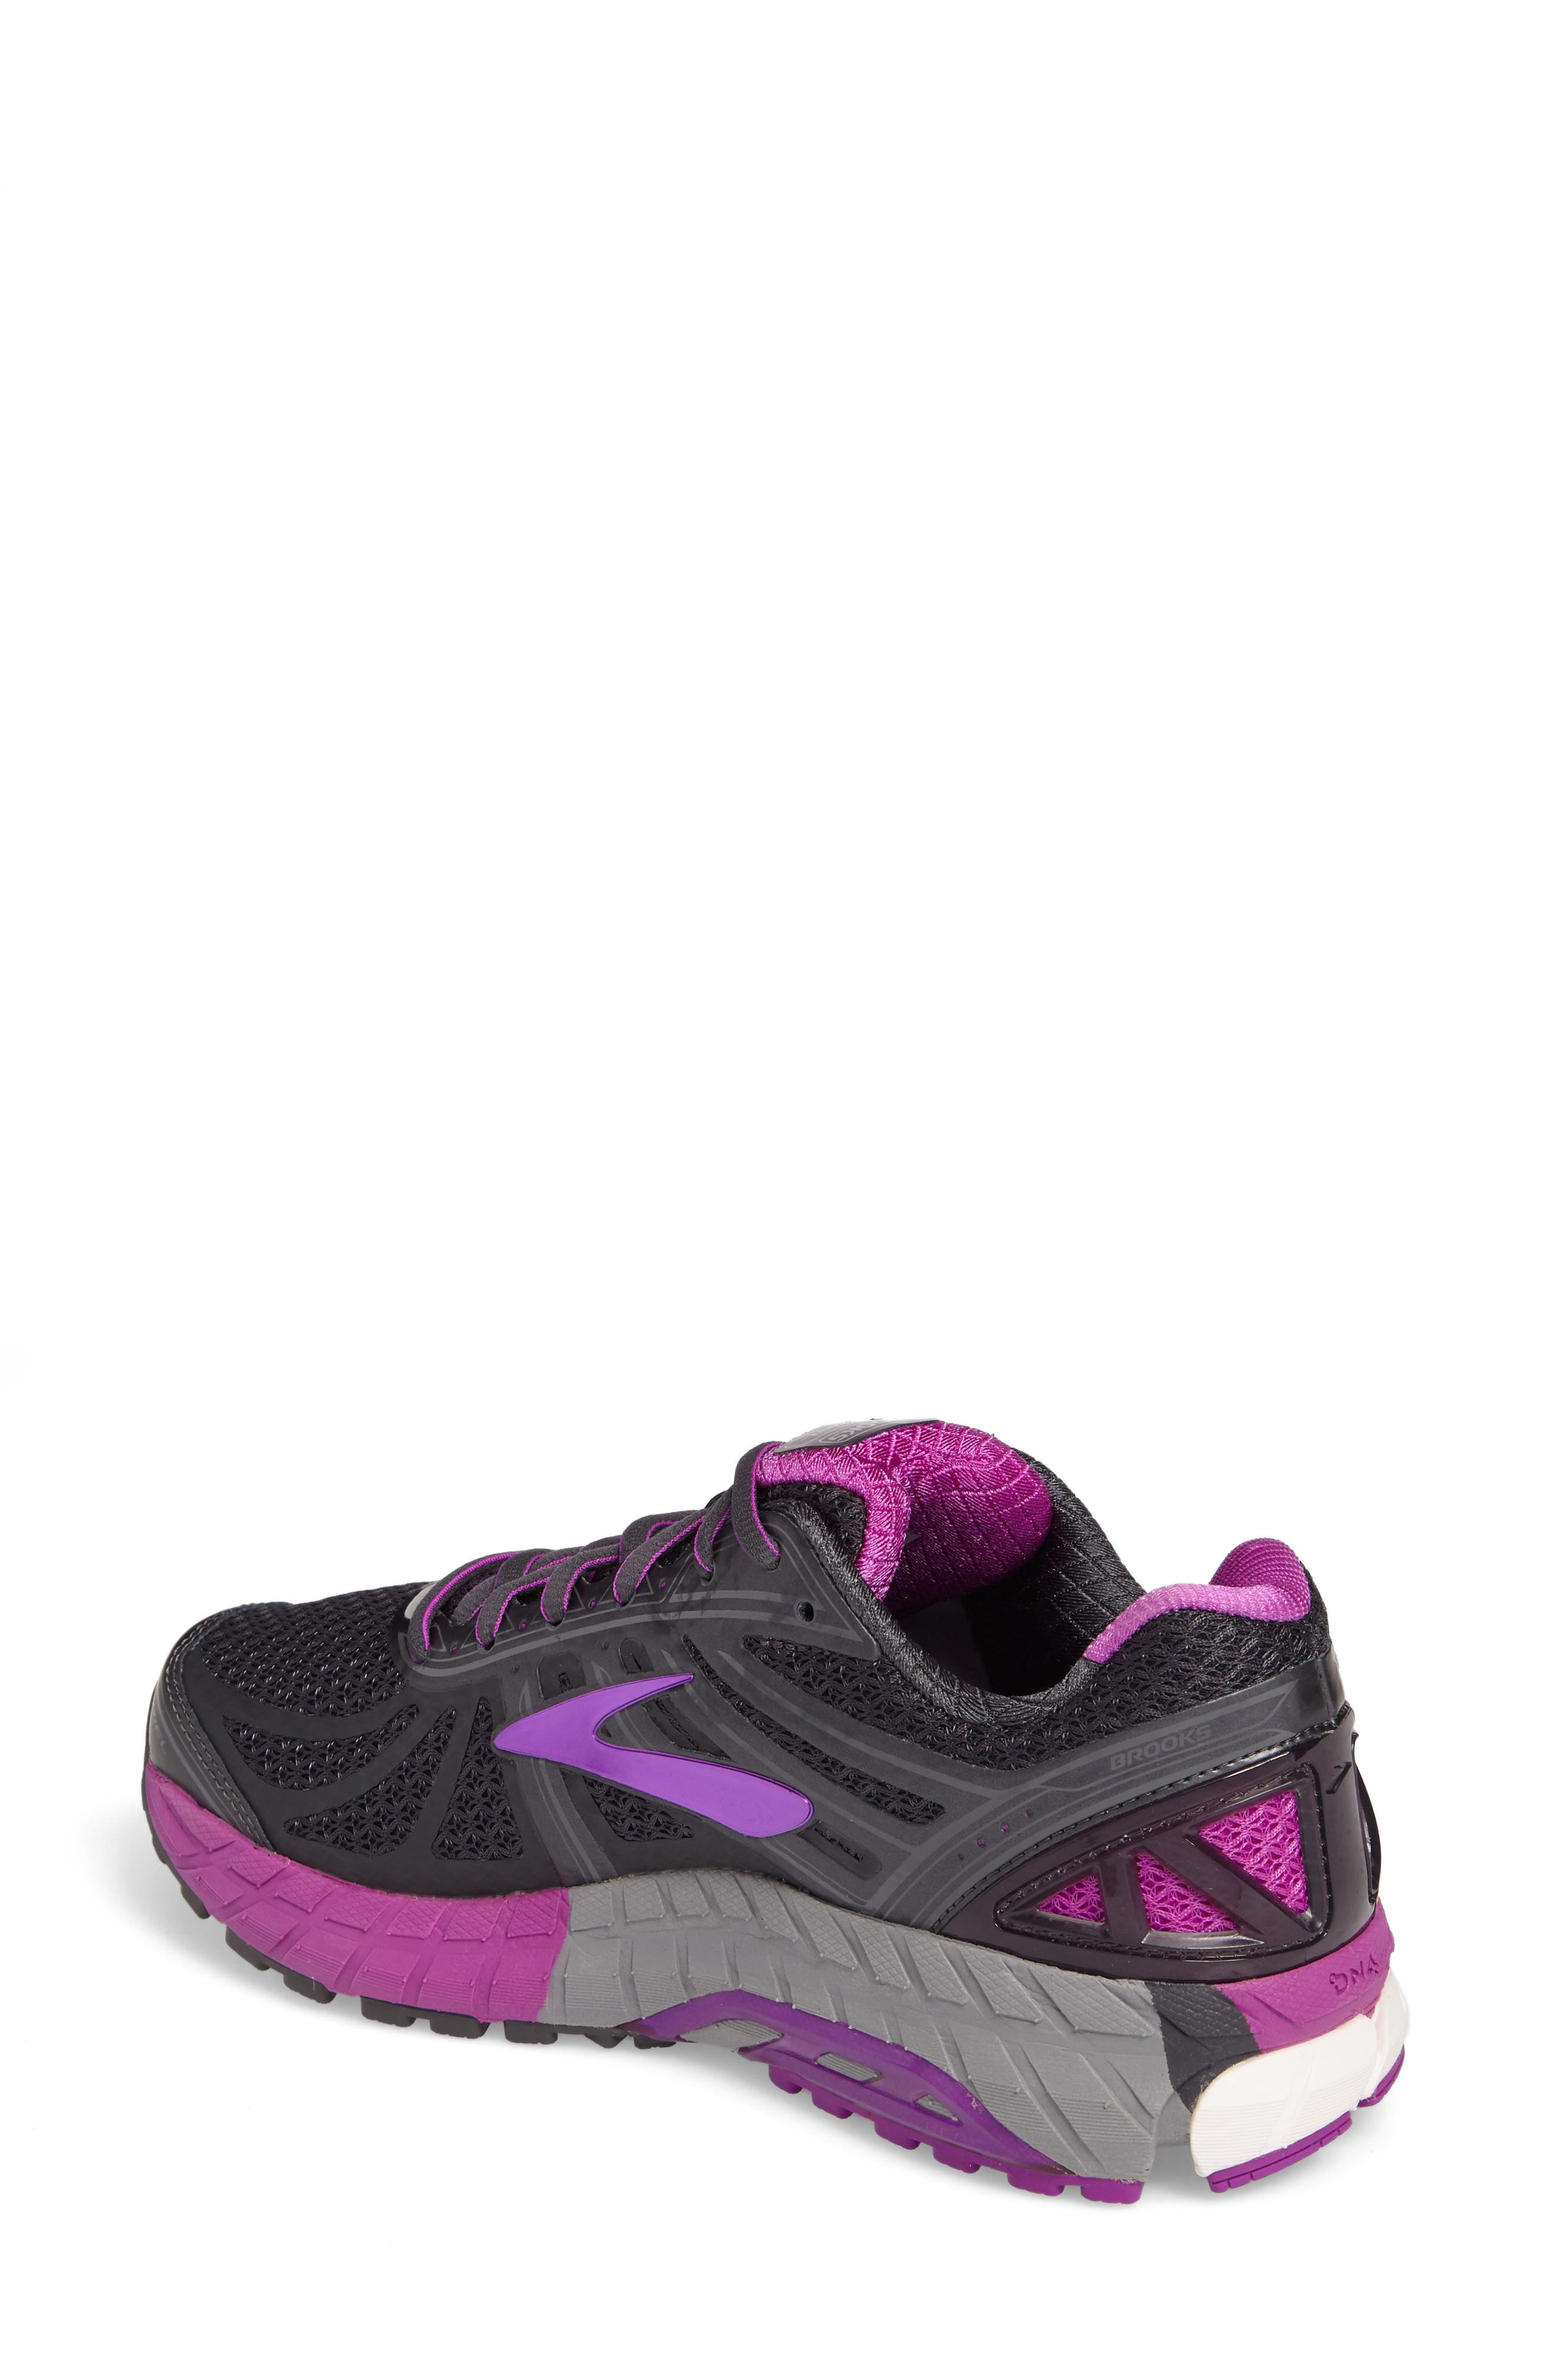 'Ariel 16' Running Shoe,                             Alternate thumbnail 2, color,                             ANTHRACITE/ PURPLE/ GREY